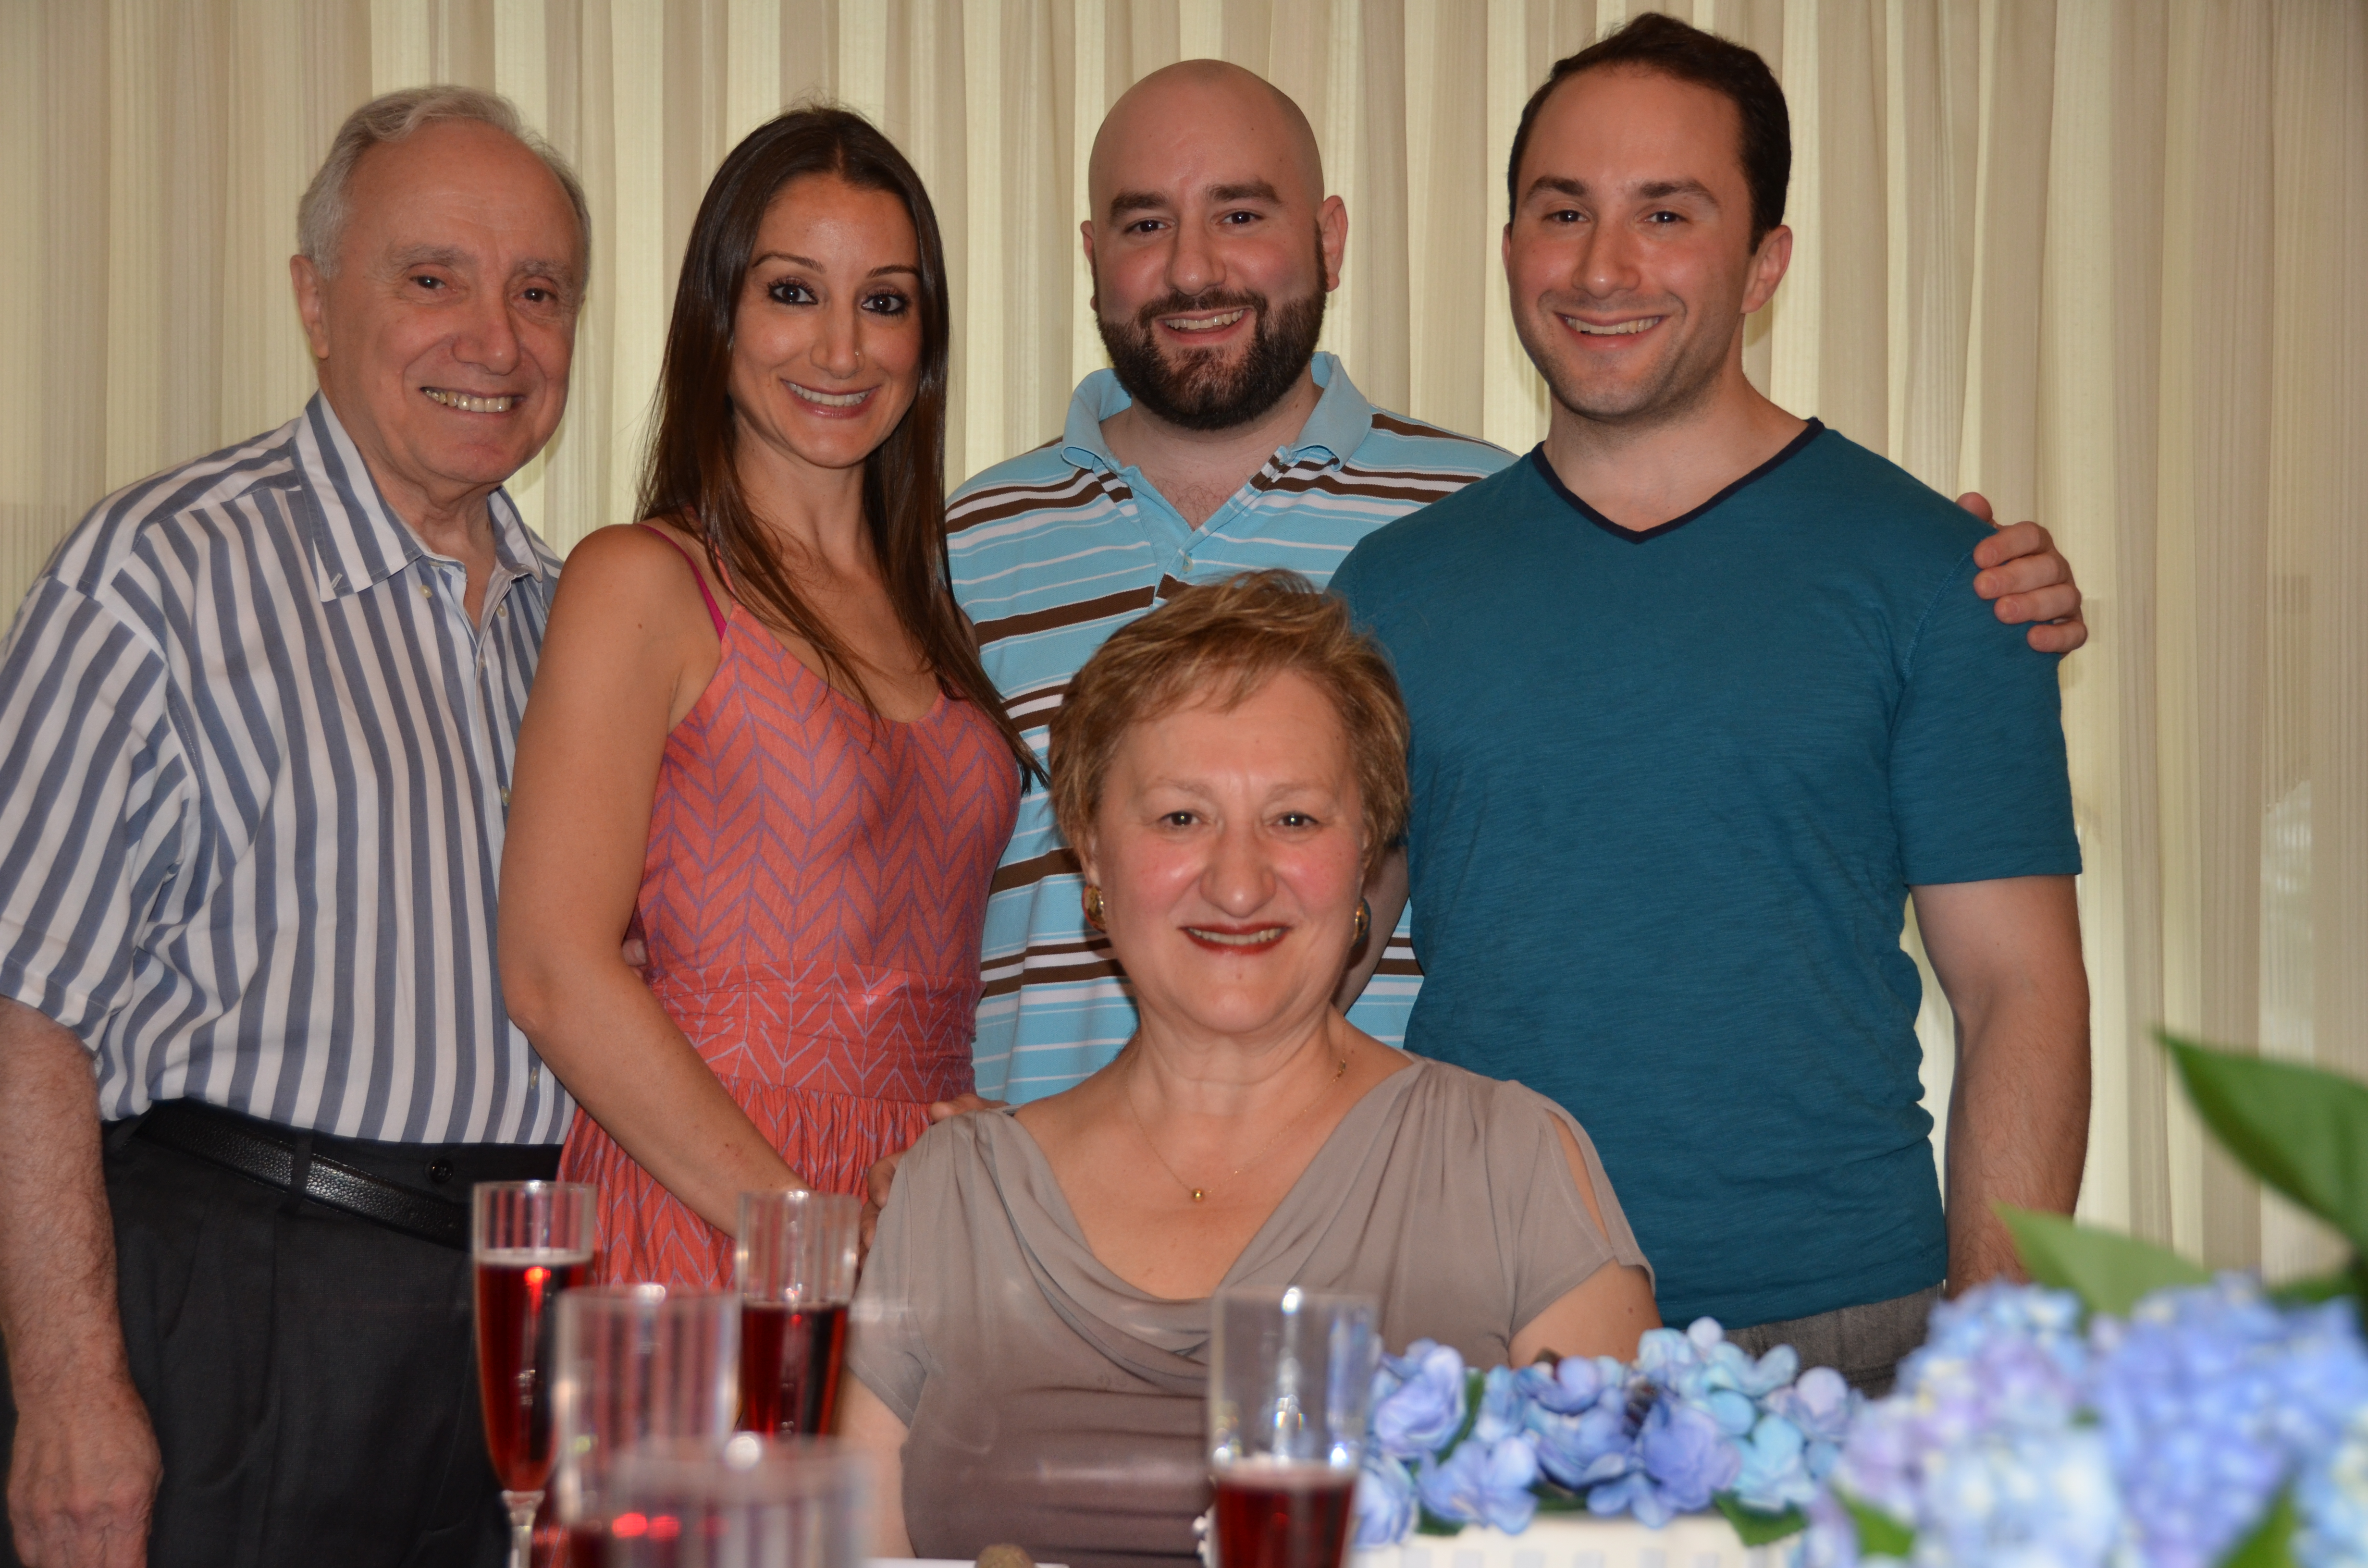 Eleanor and her family at her most recent birthday: seated, Eleanor; standing, L to R: her husband Pat, daughter Alison, son Gavin, son Austin.